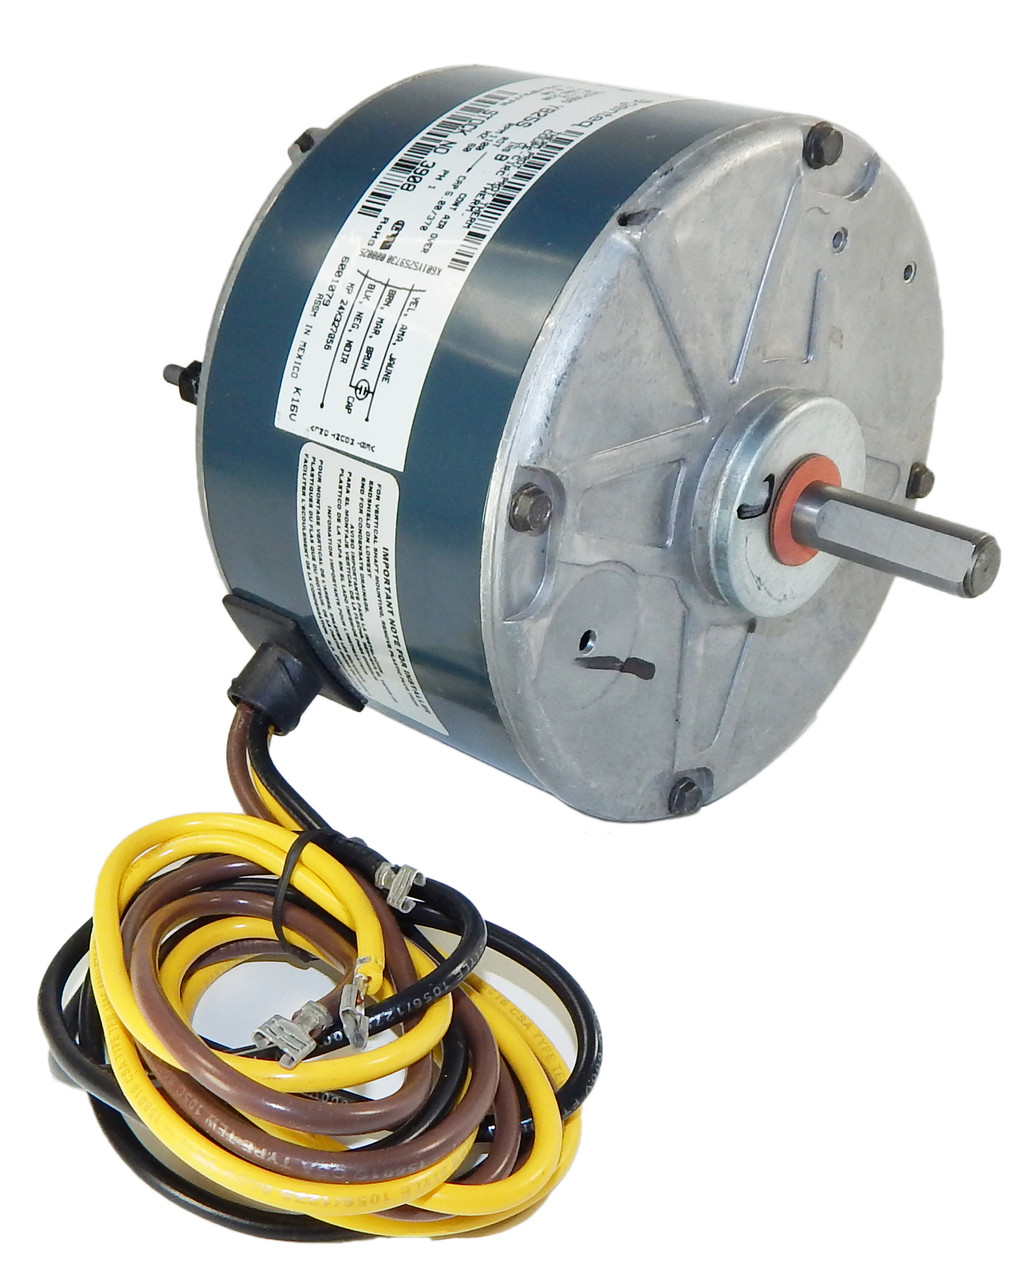 hight resolution of carrier condenser electric motor 5kcp39bgy825s 1 12hp 1075 rpm 208 230v g3908